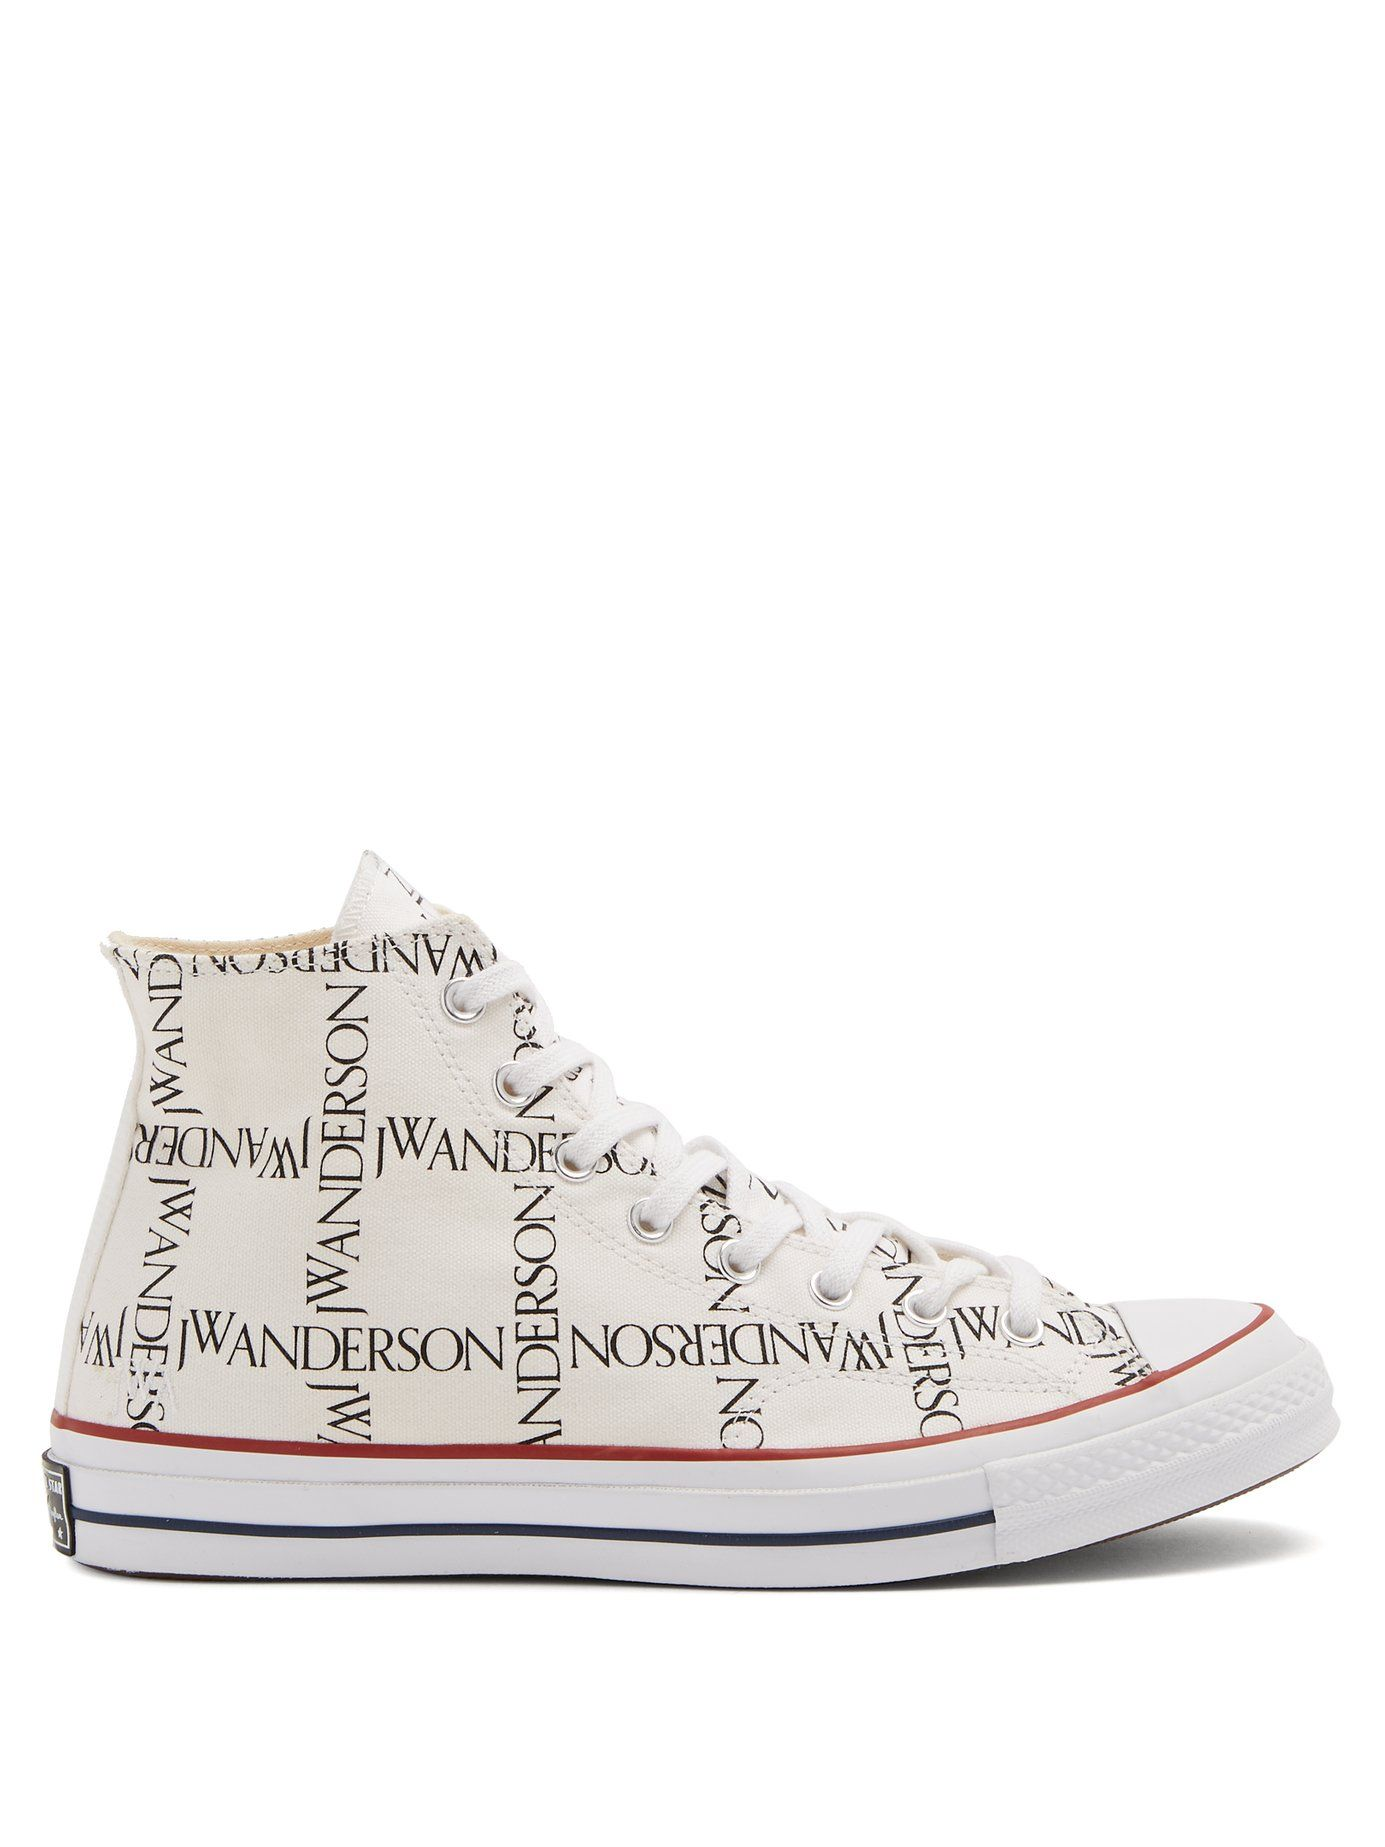 CONVERSE X JW ANDERSON X JW ANDERSON LOGO-PRINT HIGH-TOP TRAINERS.   conversexjwanderson  cloth   116cc26a9